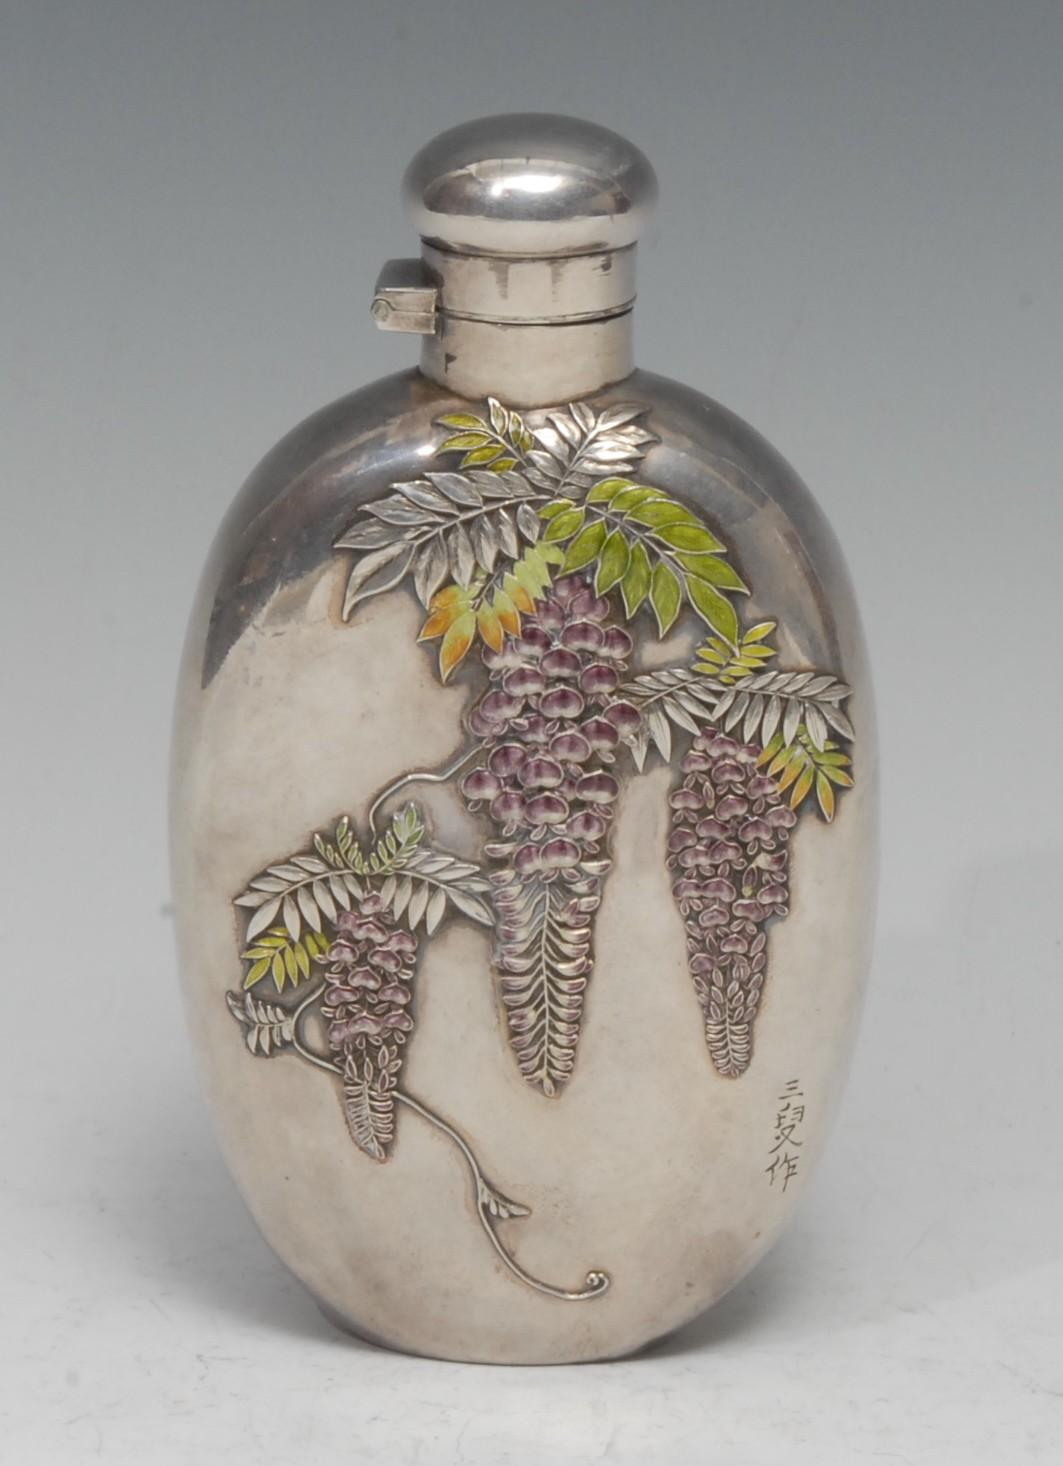 A Japanese silver and enamel oval hip flask, applied and decorated in polychrome with wisteria,